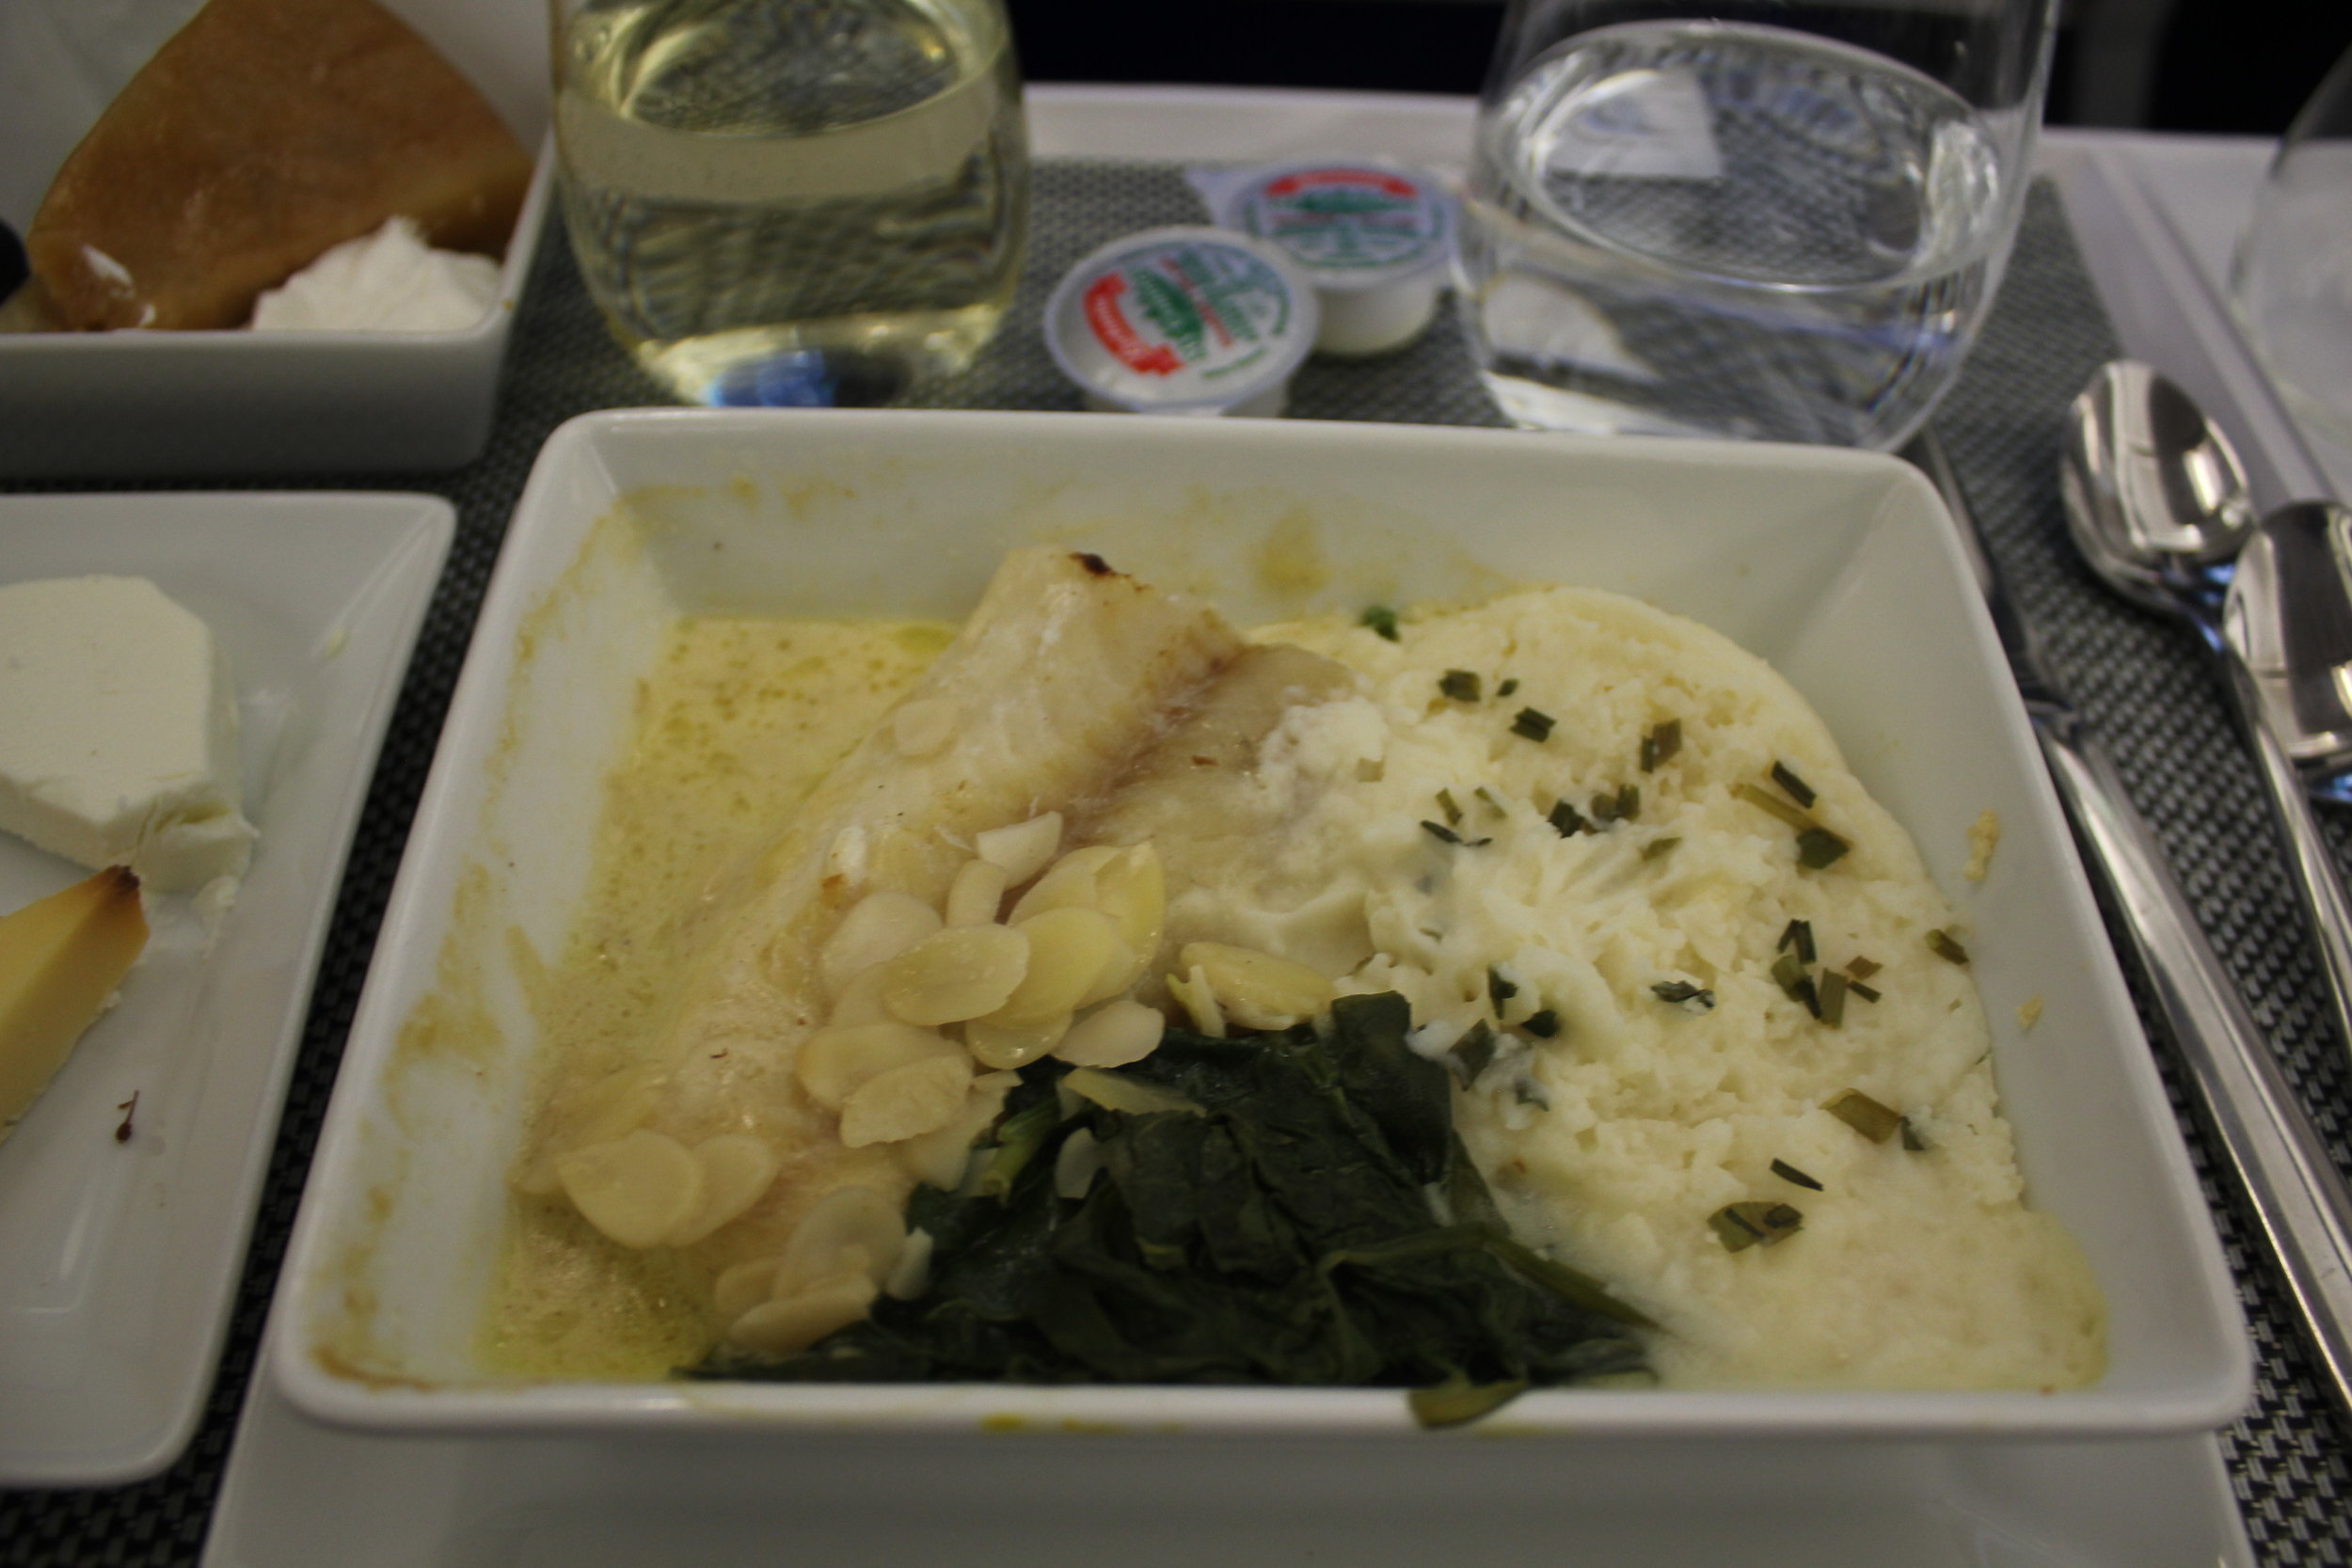 Brussels Airlines business class – Cod in herbed cream sauce